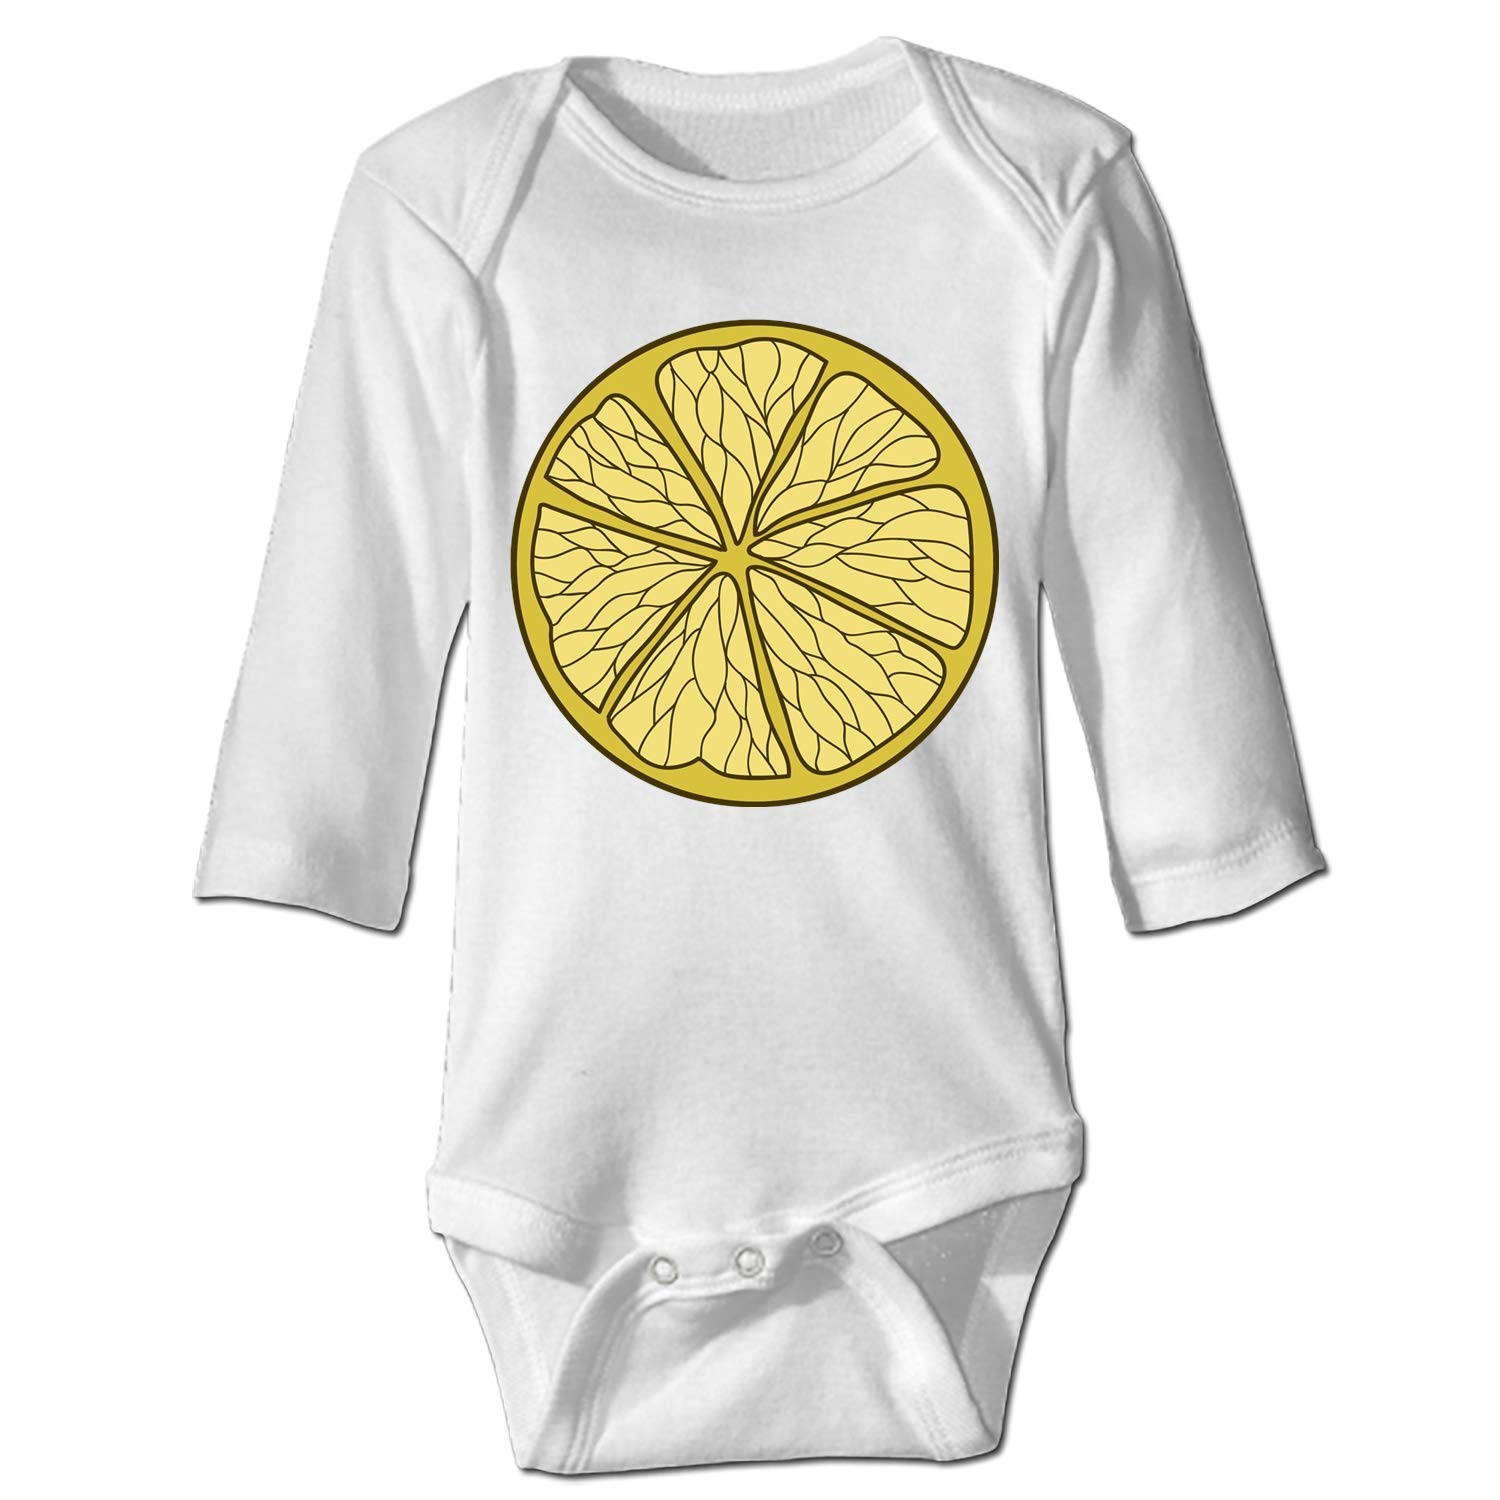 Imiss Lemon Piece Cool Shirt Funny Gift Baby